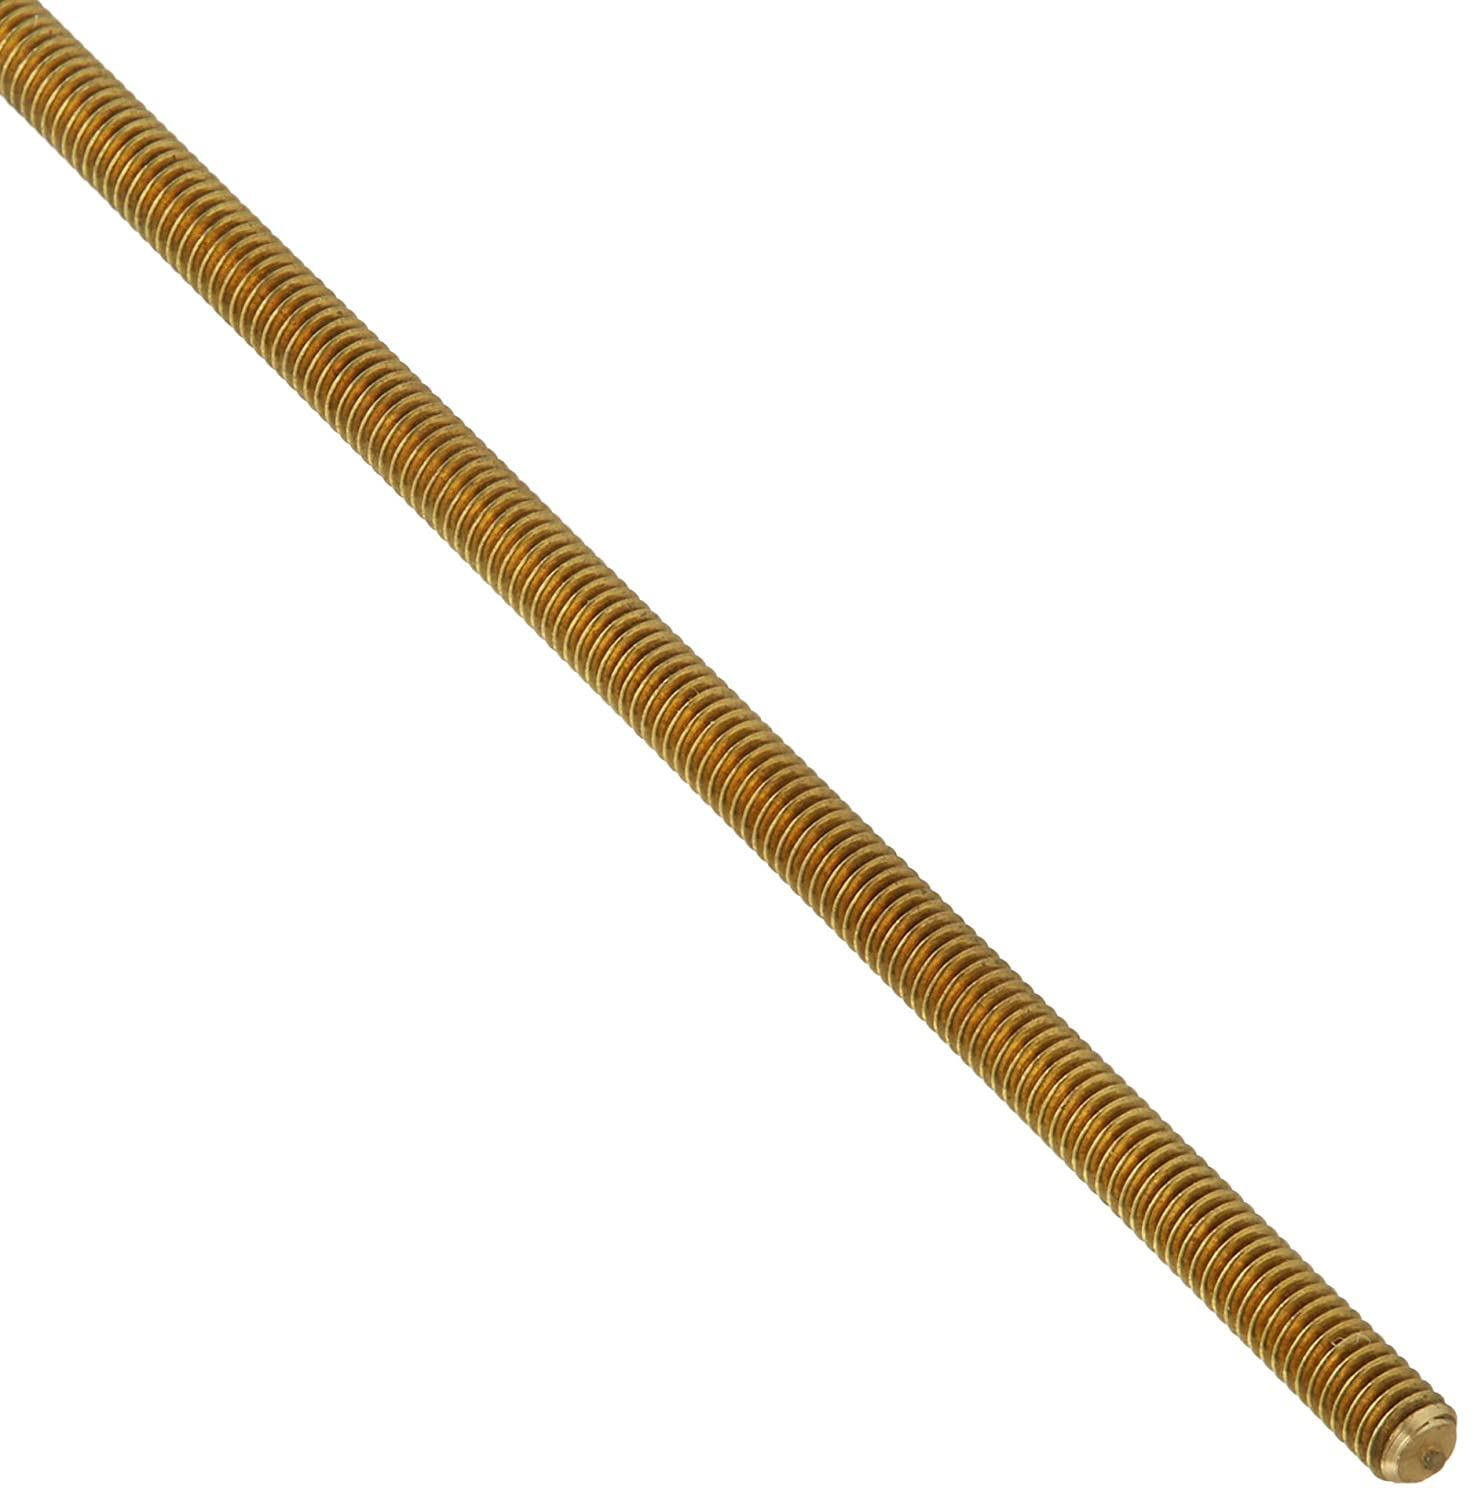 Uxcell a16040100ux0228 M2.5 x 250mm Male Threaded 0.5mm Pitch All Thread Brass Rod Bars